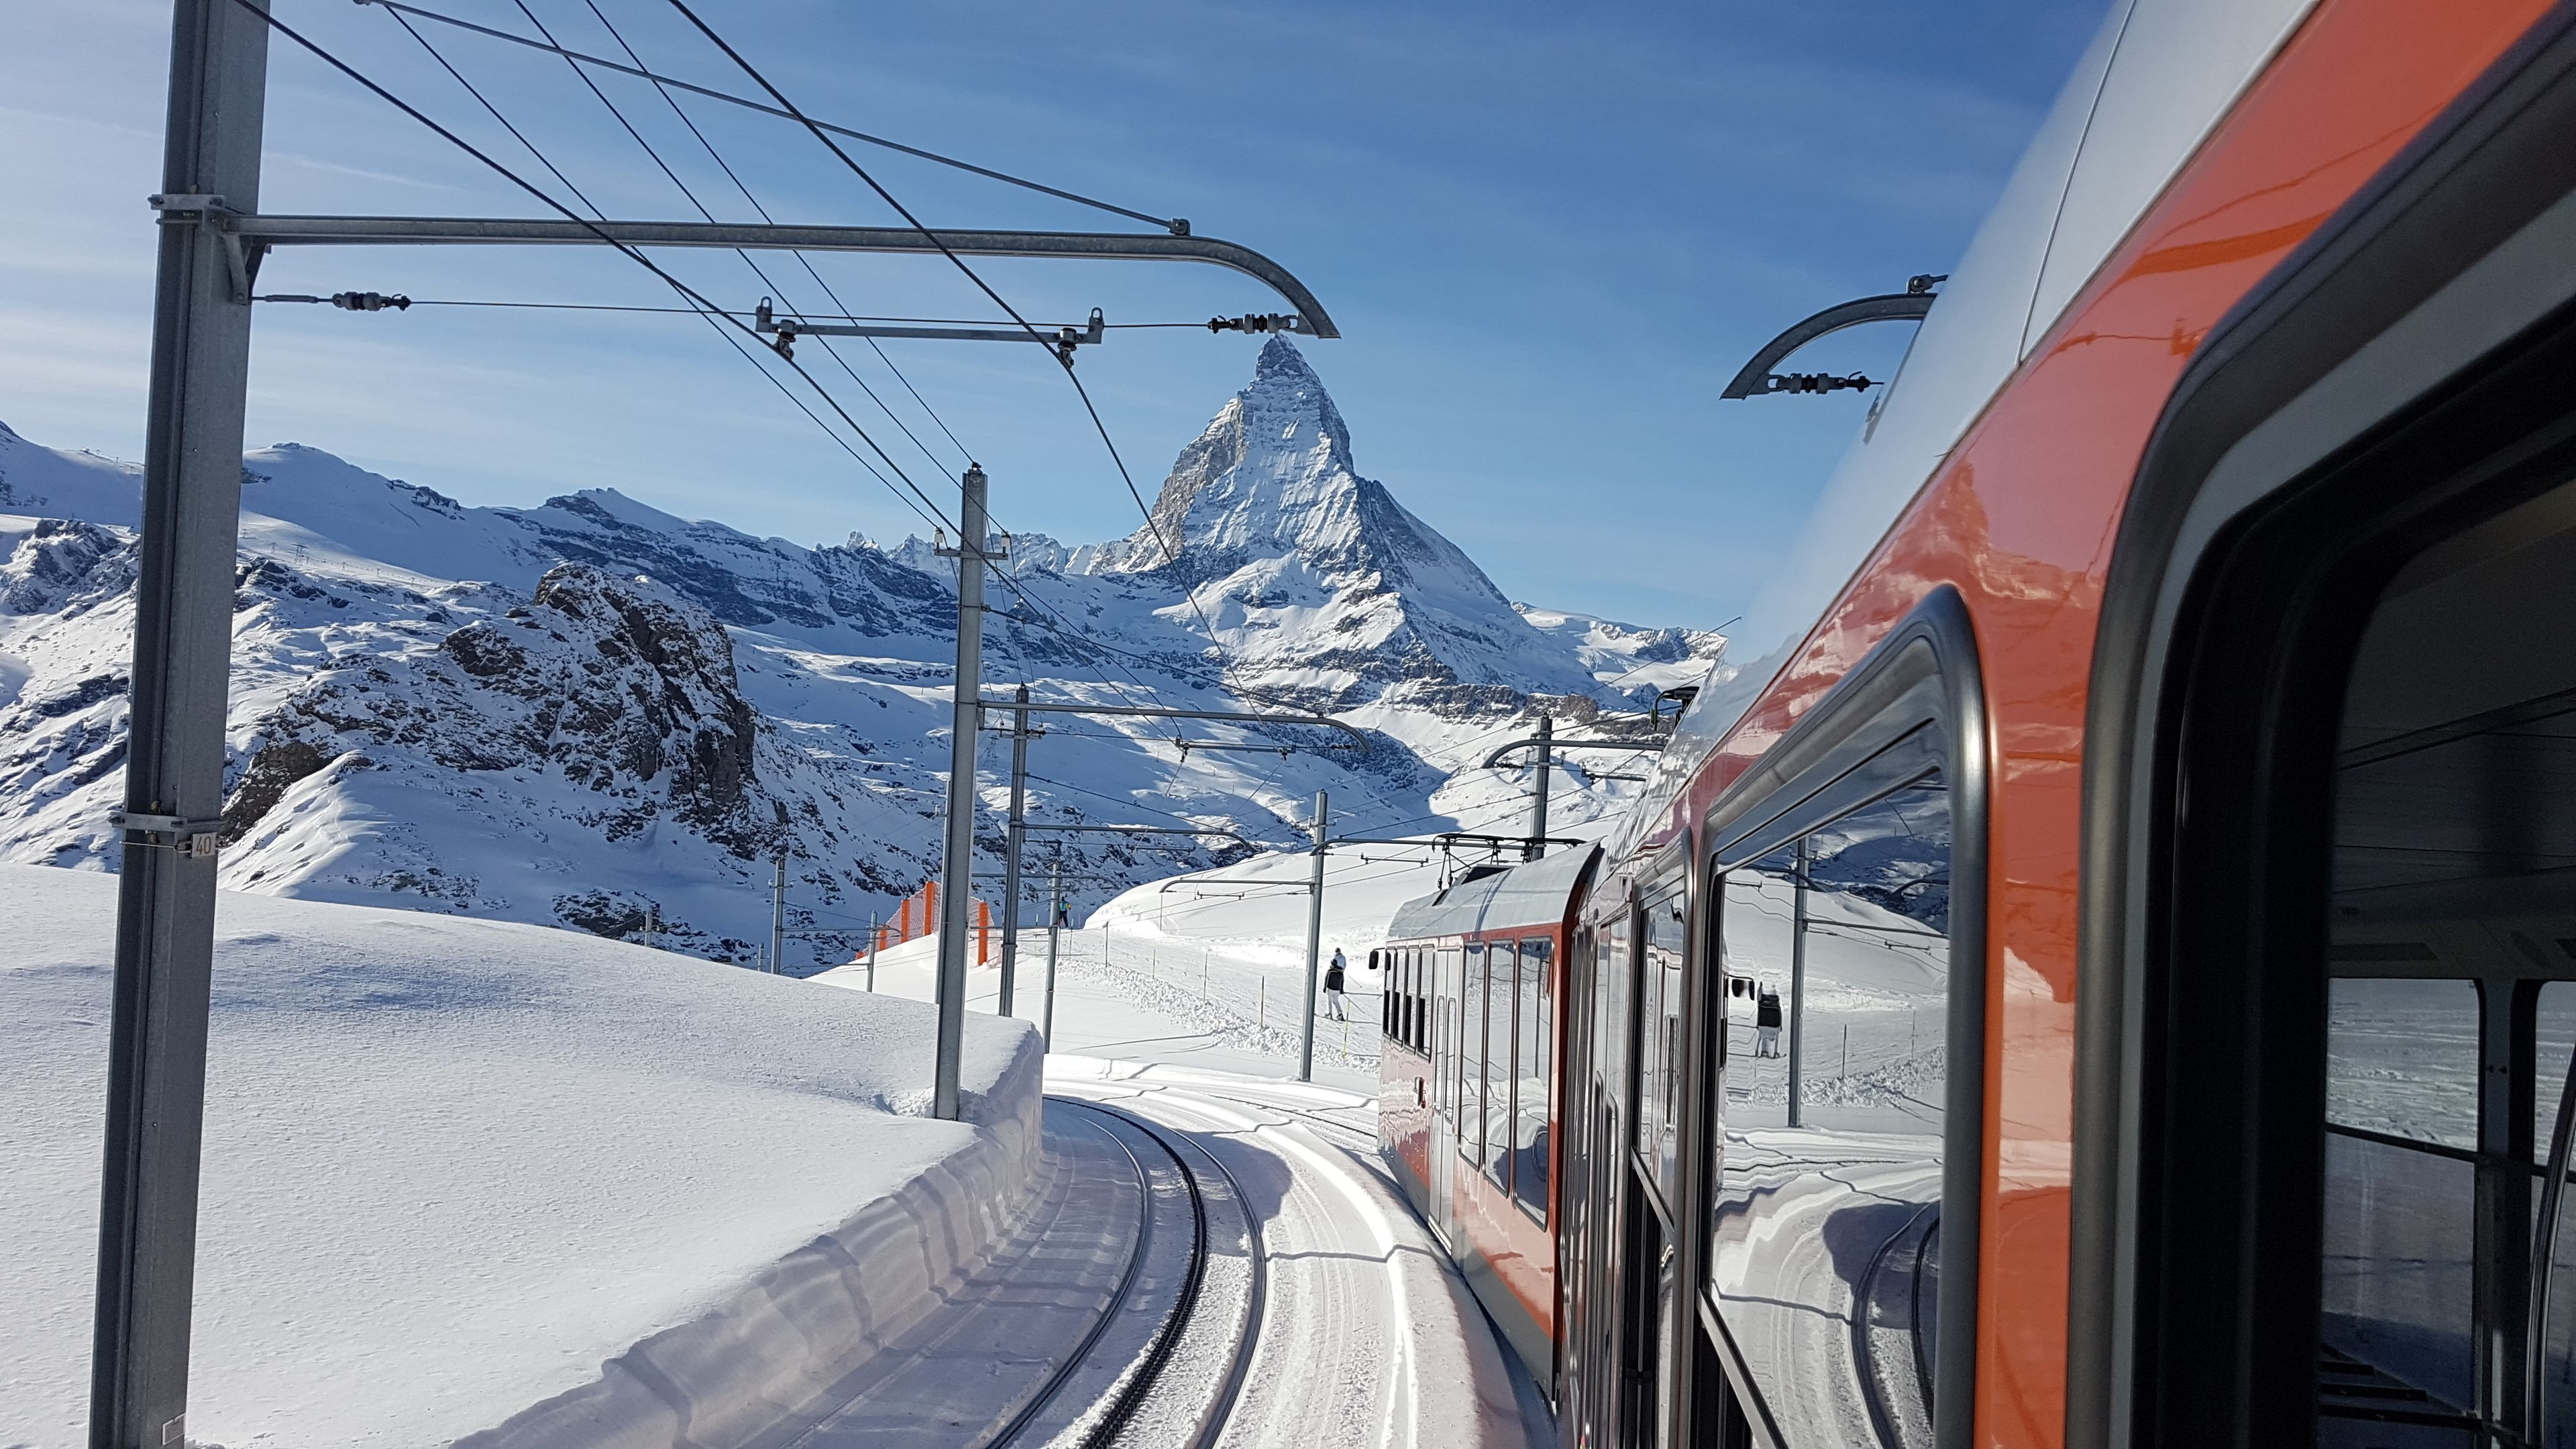 Zermatt & Gornergrat (Matterhorn area) from Bern